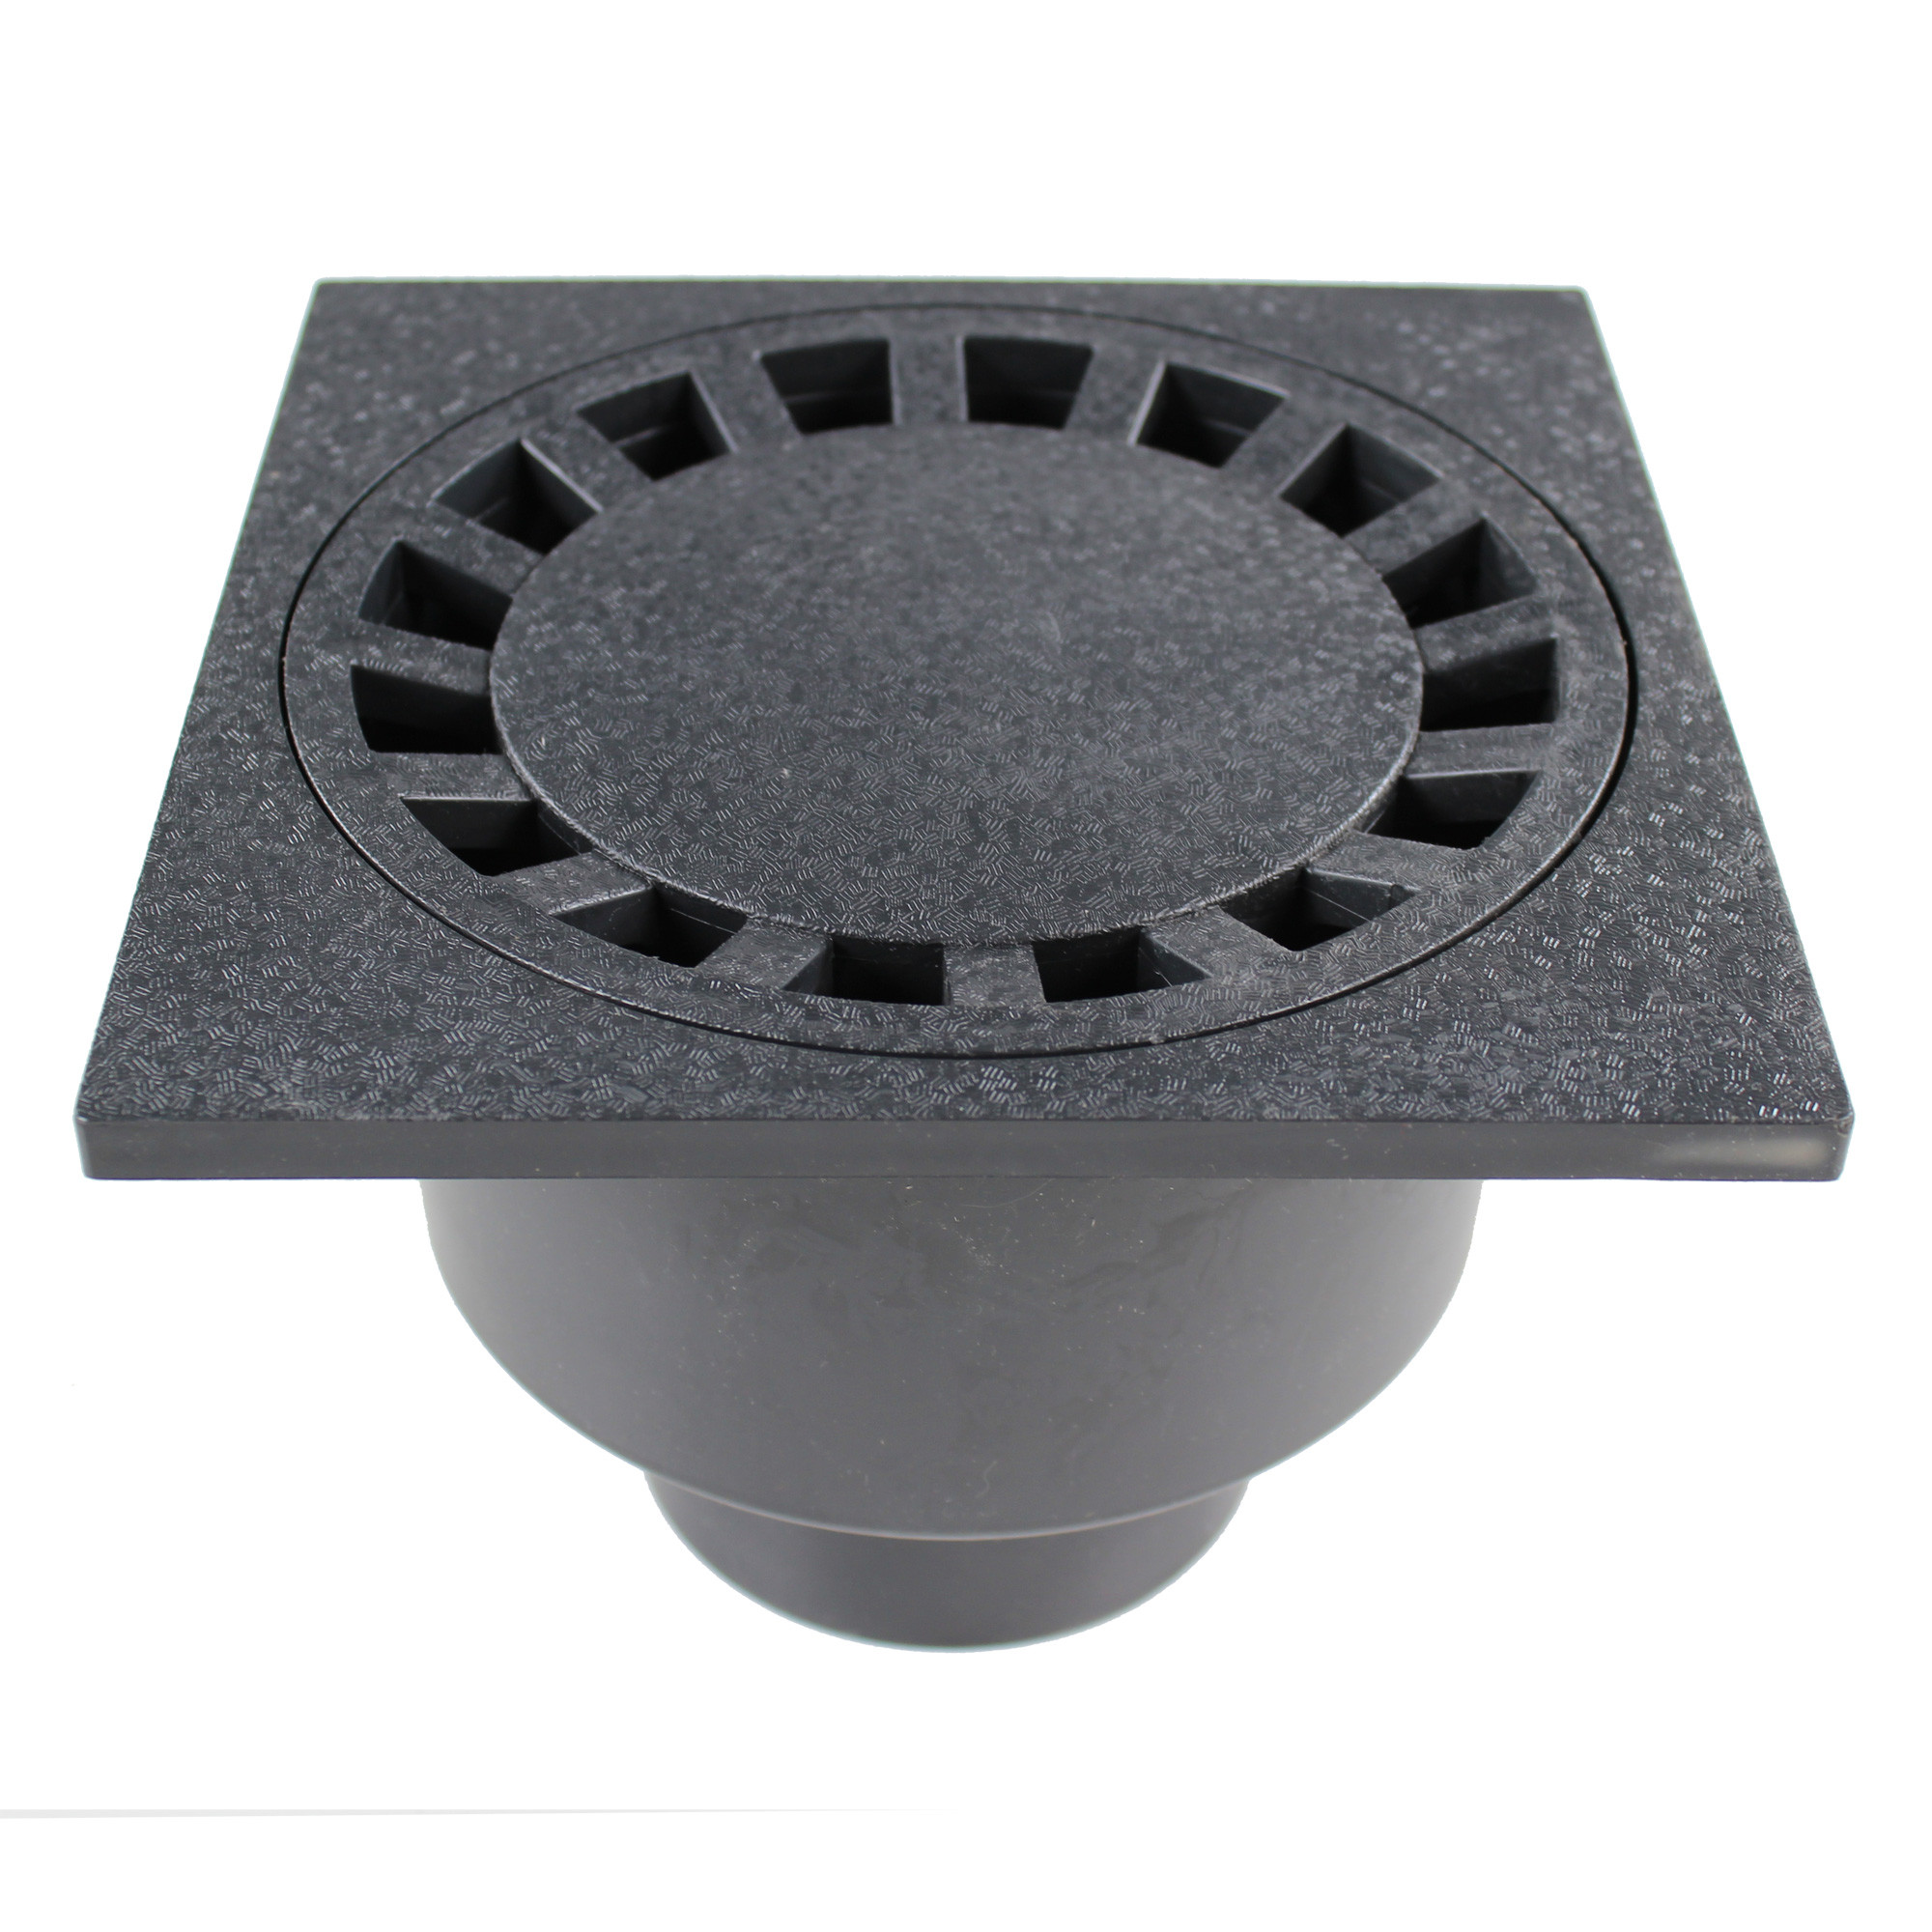 siphon de sol pvc 200x200mm anthracite anjou connectique